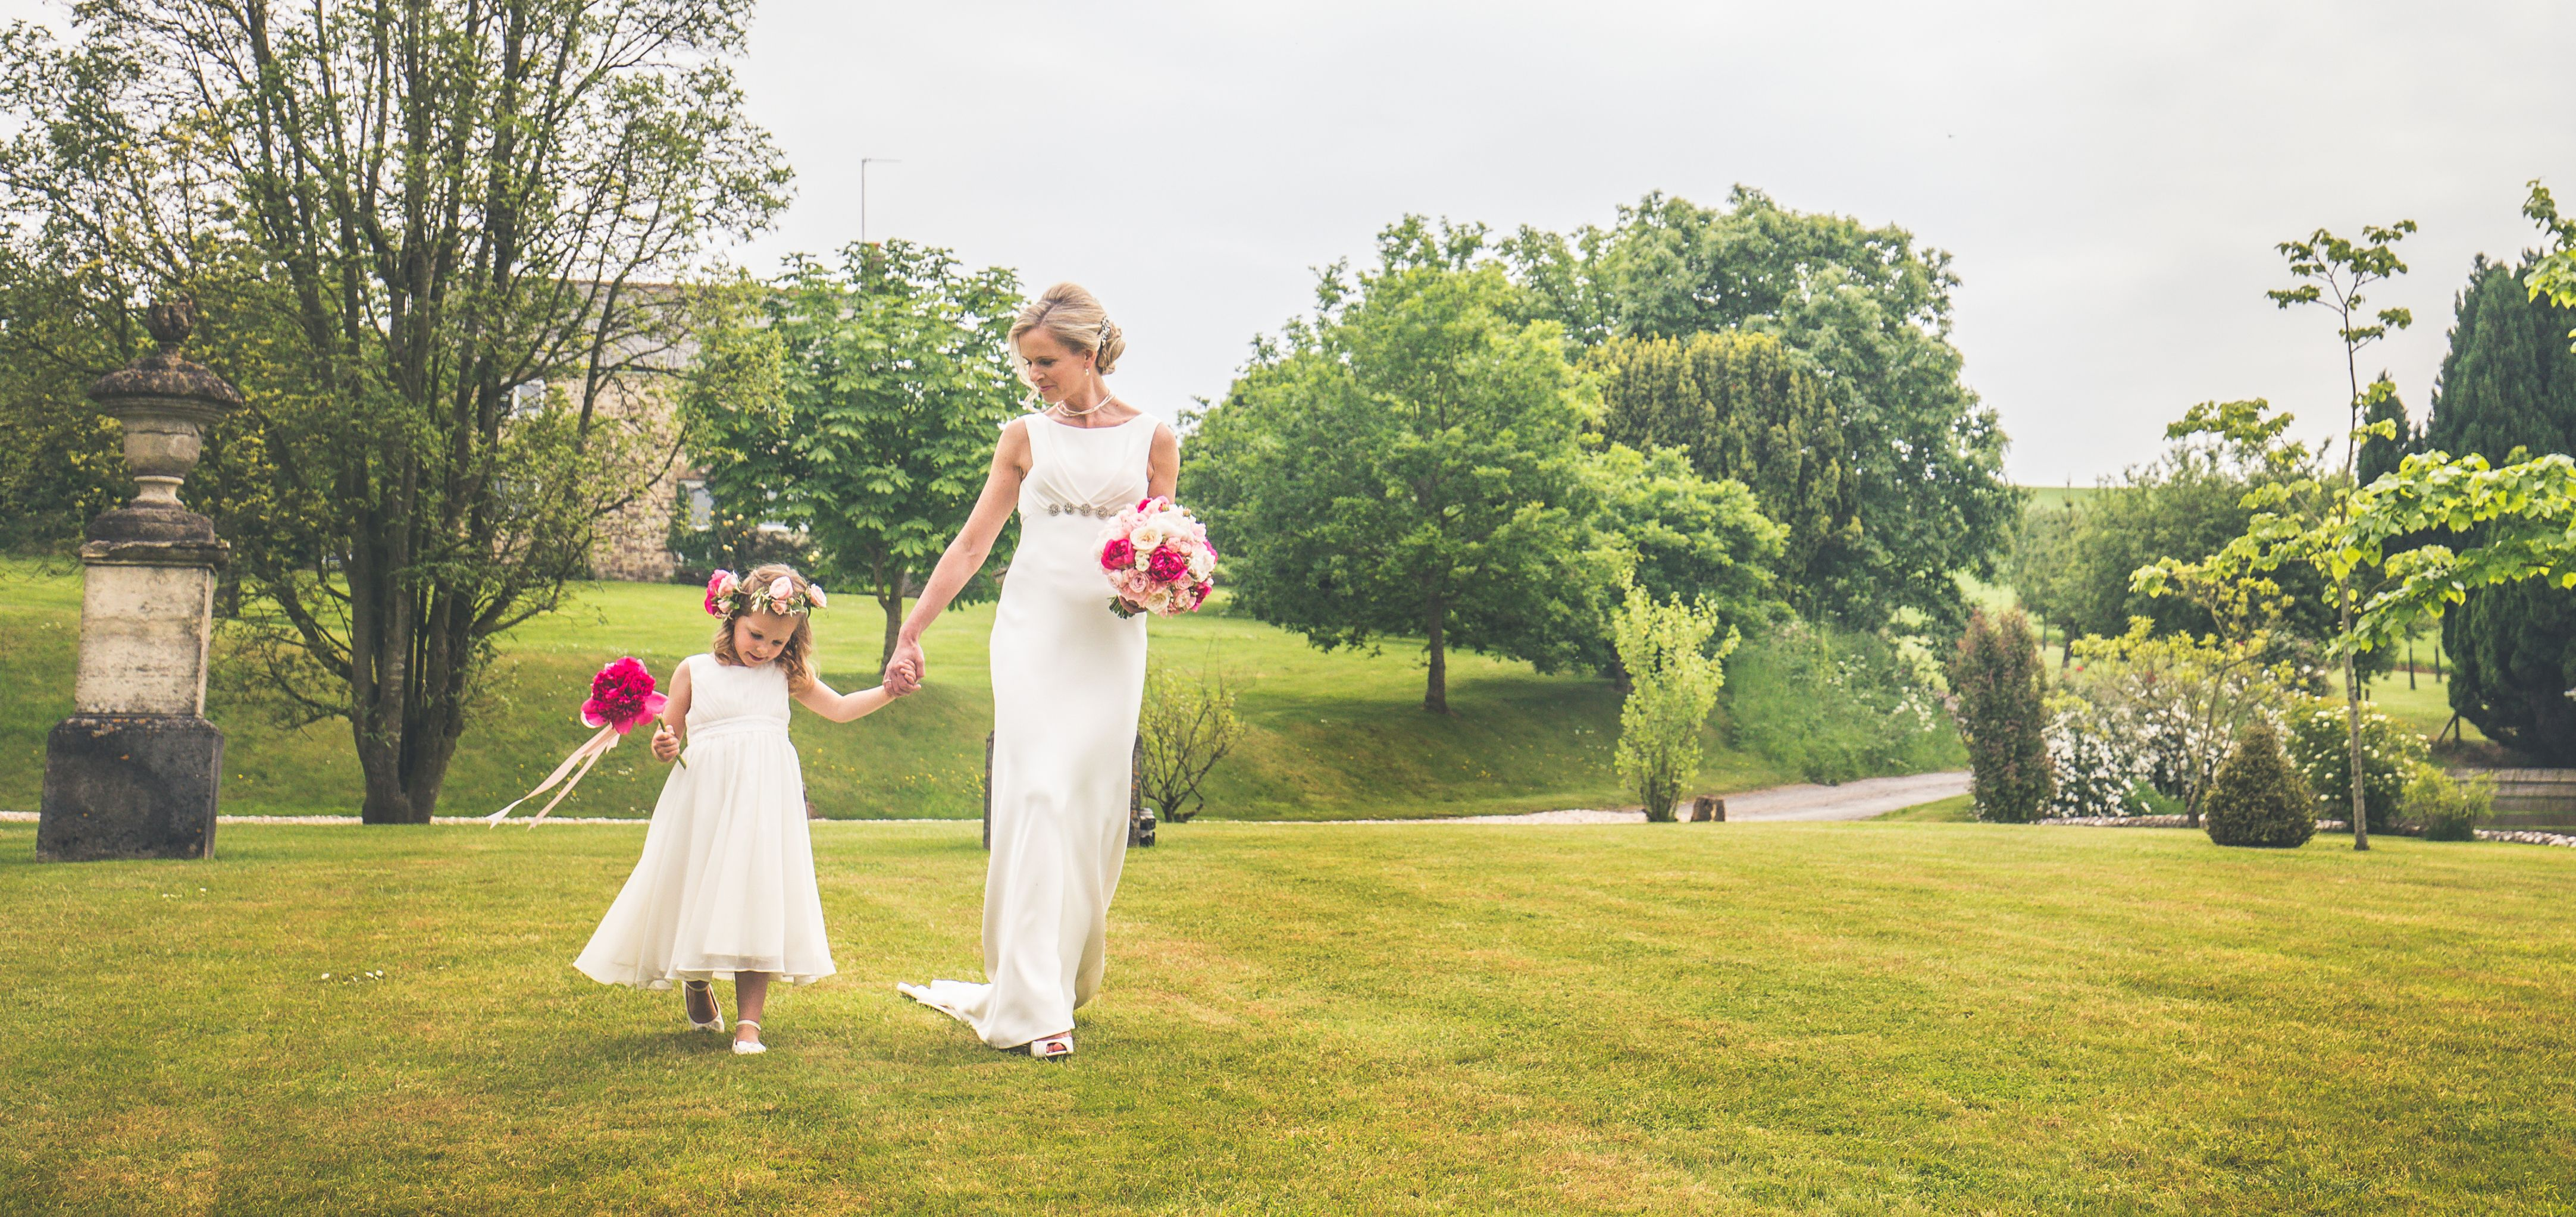 Claire And Chris Wedding At Axnoller House Flowers By West Dorset